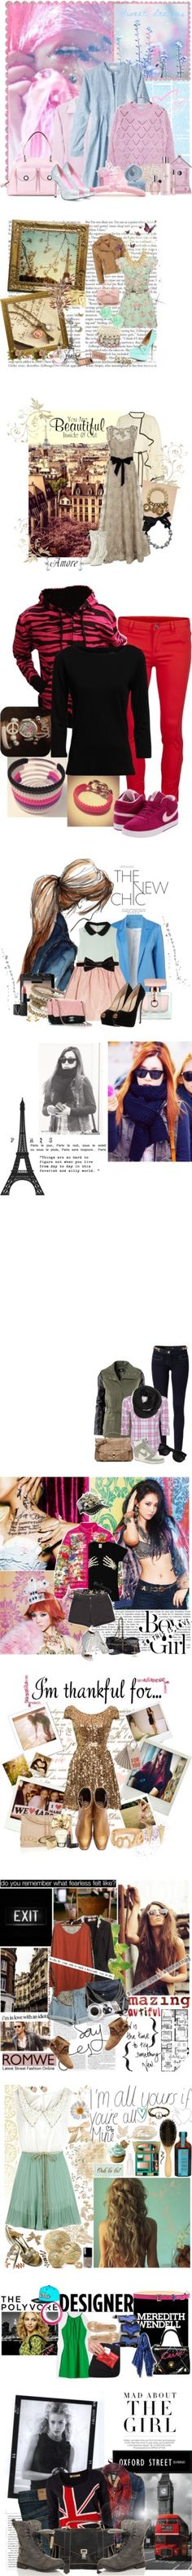 """""""Sets I Liked LXII"""" by yamyiy ❤ liked on Polyvore"""